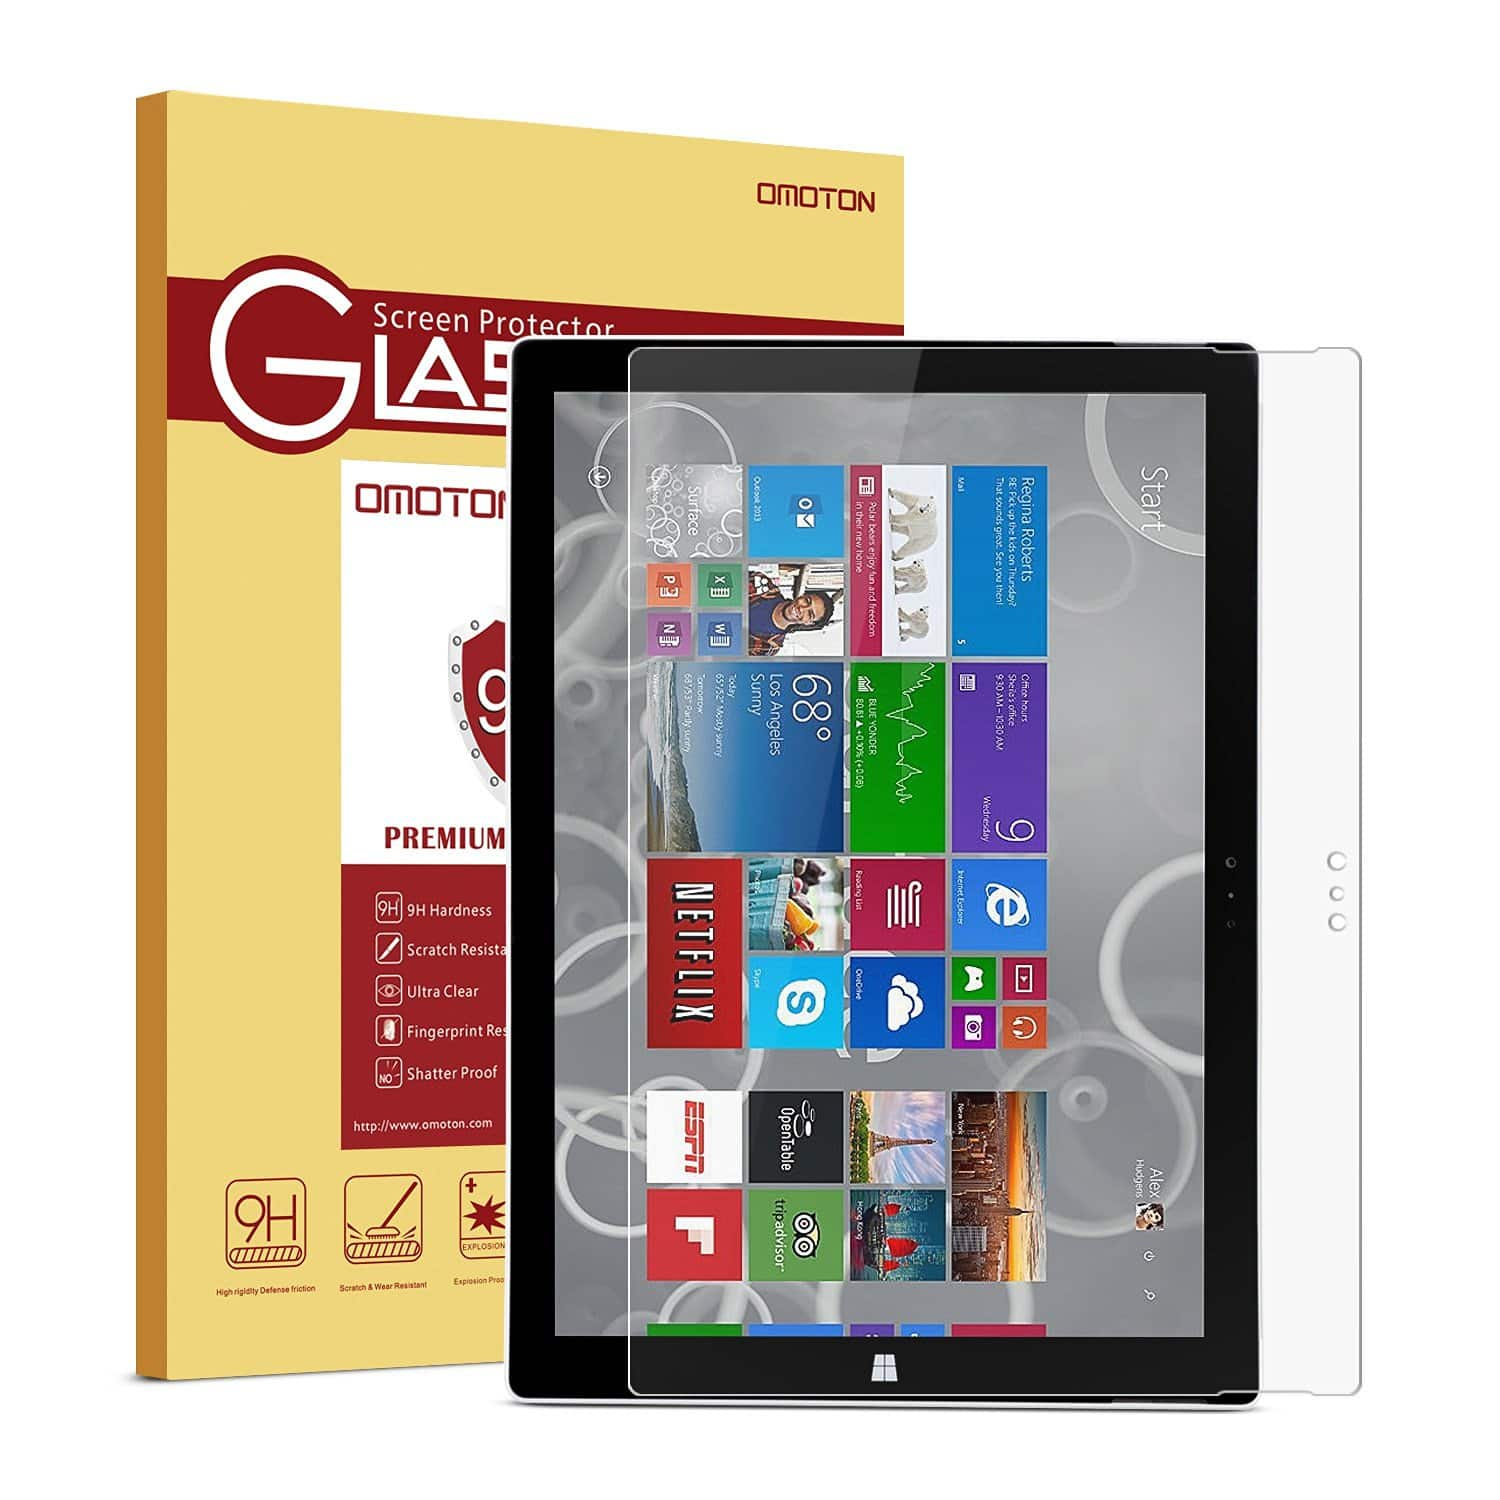 OMOTON 9H Hardness Tempered-Glass Screen Surface Pro 3 Protector $4 AC, OMOTON 2.5D Round Edge 9H Hardness Tempered Glass Apple iPad Pro 12.9-Inch Screen Protector $4 AC + FSSS!